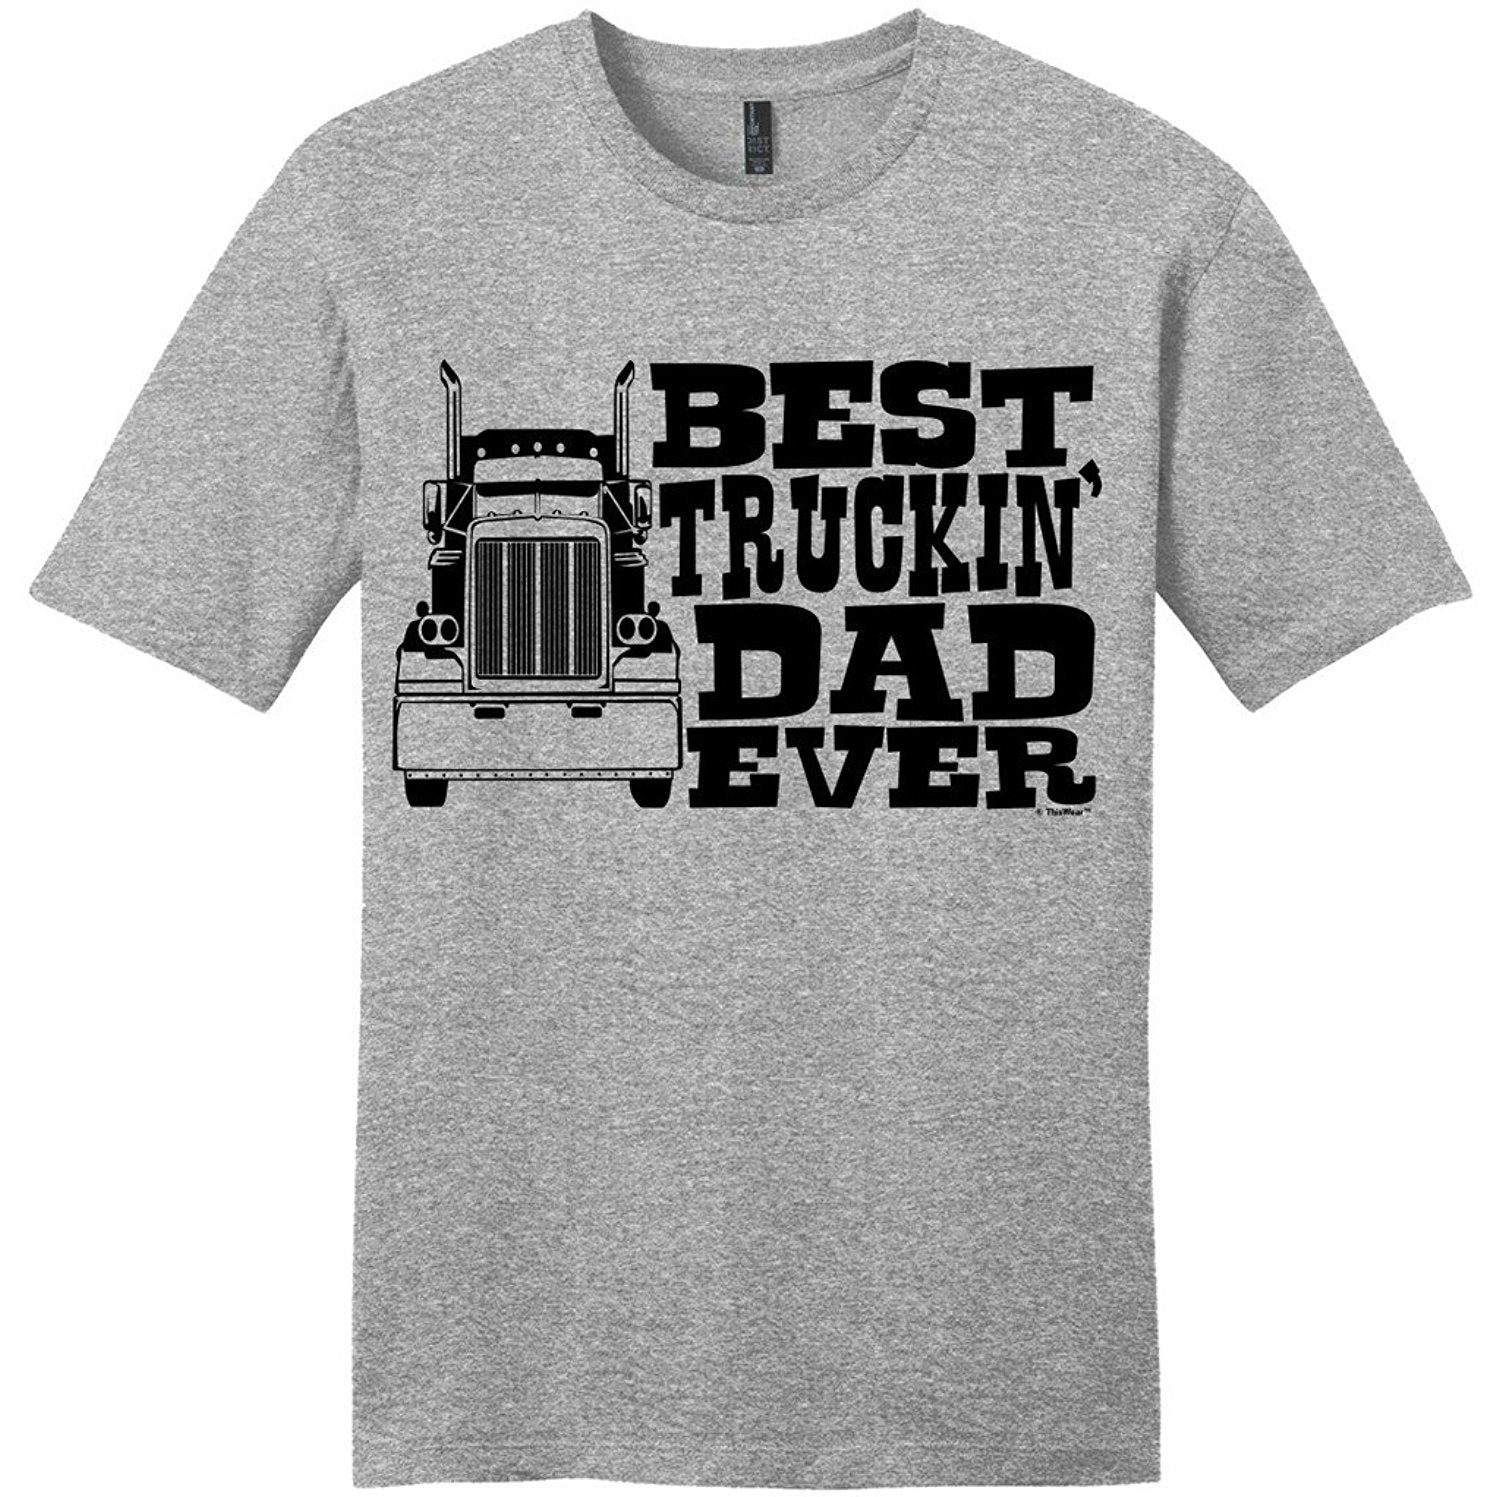 Best Truckin' Dad Ever T-shirt - Truck Driver Tee - Cozzoo